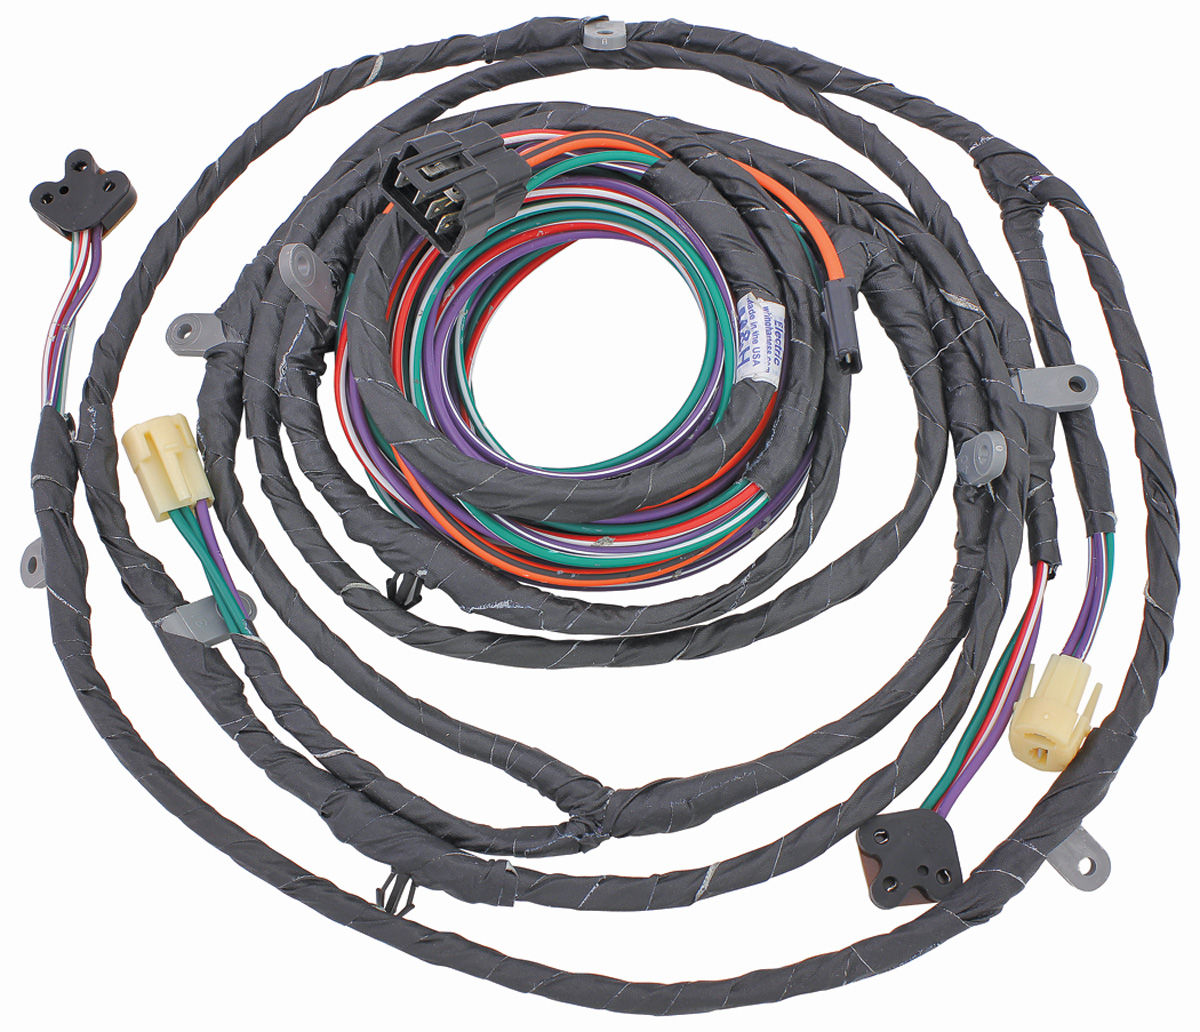 Power Window Wiring Harness - Schematics Wiring Diagrams • on electrical harness, obd0 to obd1 conversion harness, battery harness, pet harness, nakamichi harness, pony harness, radio harness, engine harness, suspension harness, safety harness, cable harness, swing harness, amp bypass harness, dog harness, maxi-seal harness, alpine stereo harness, oxygen sensor extension harness, fall protection harness,